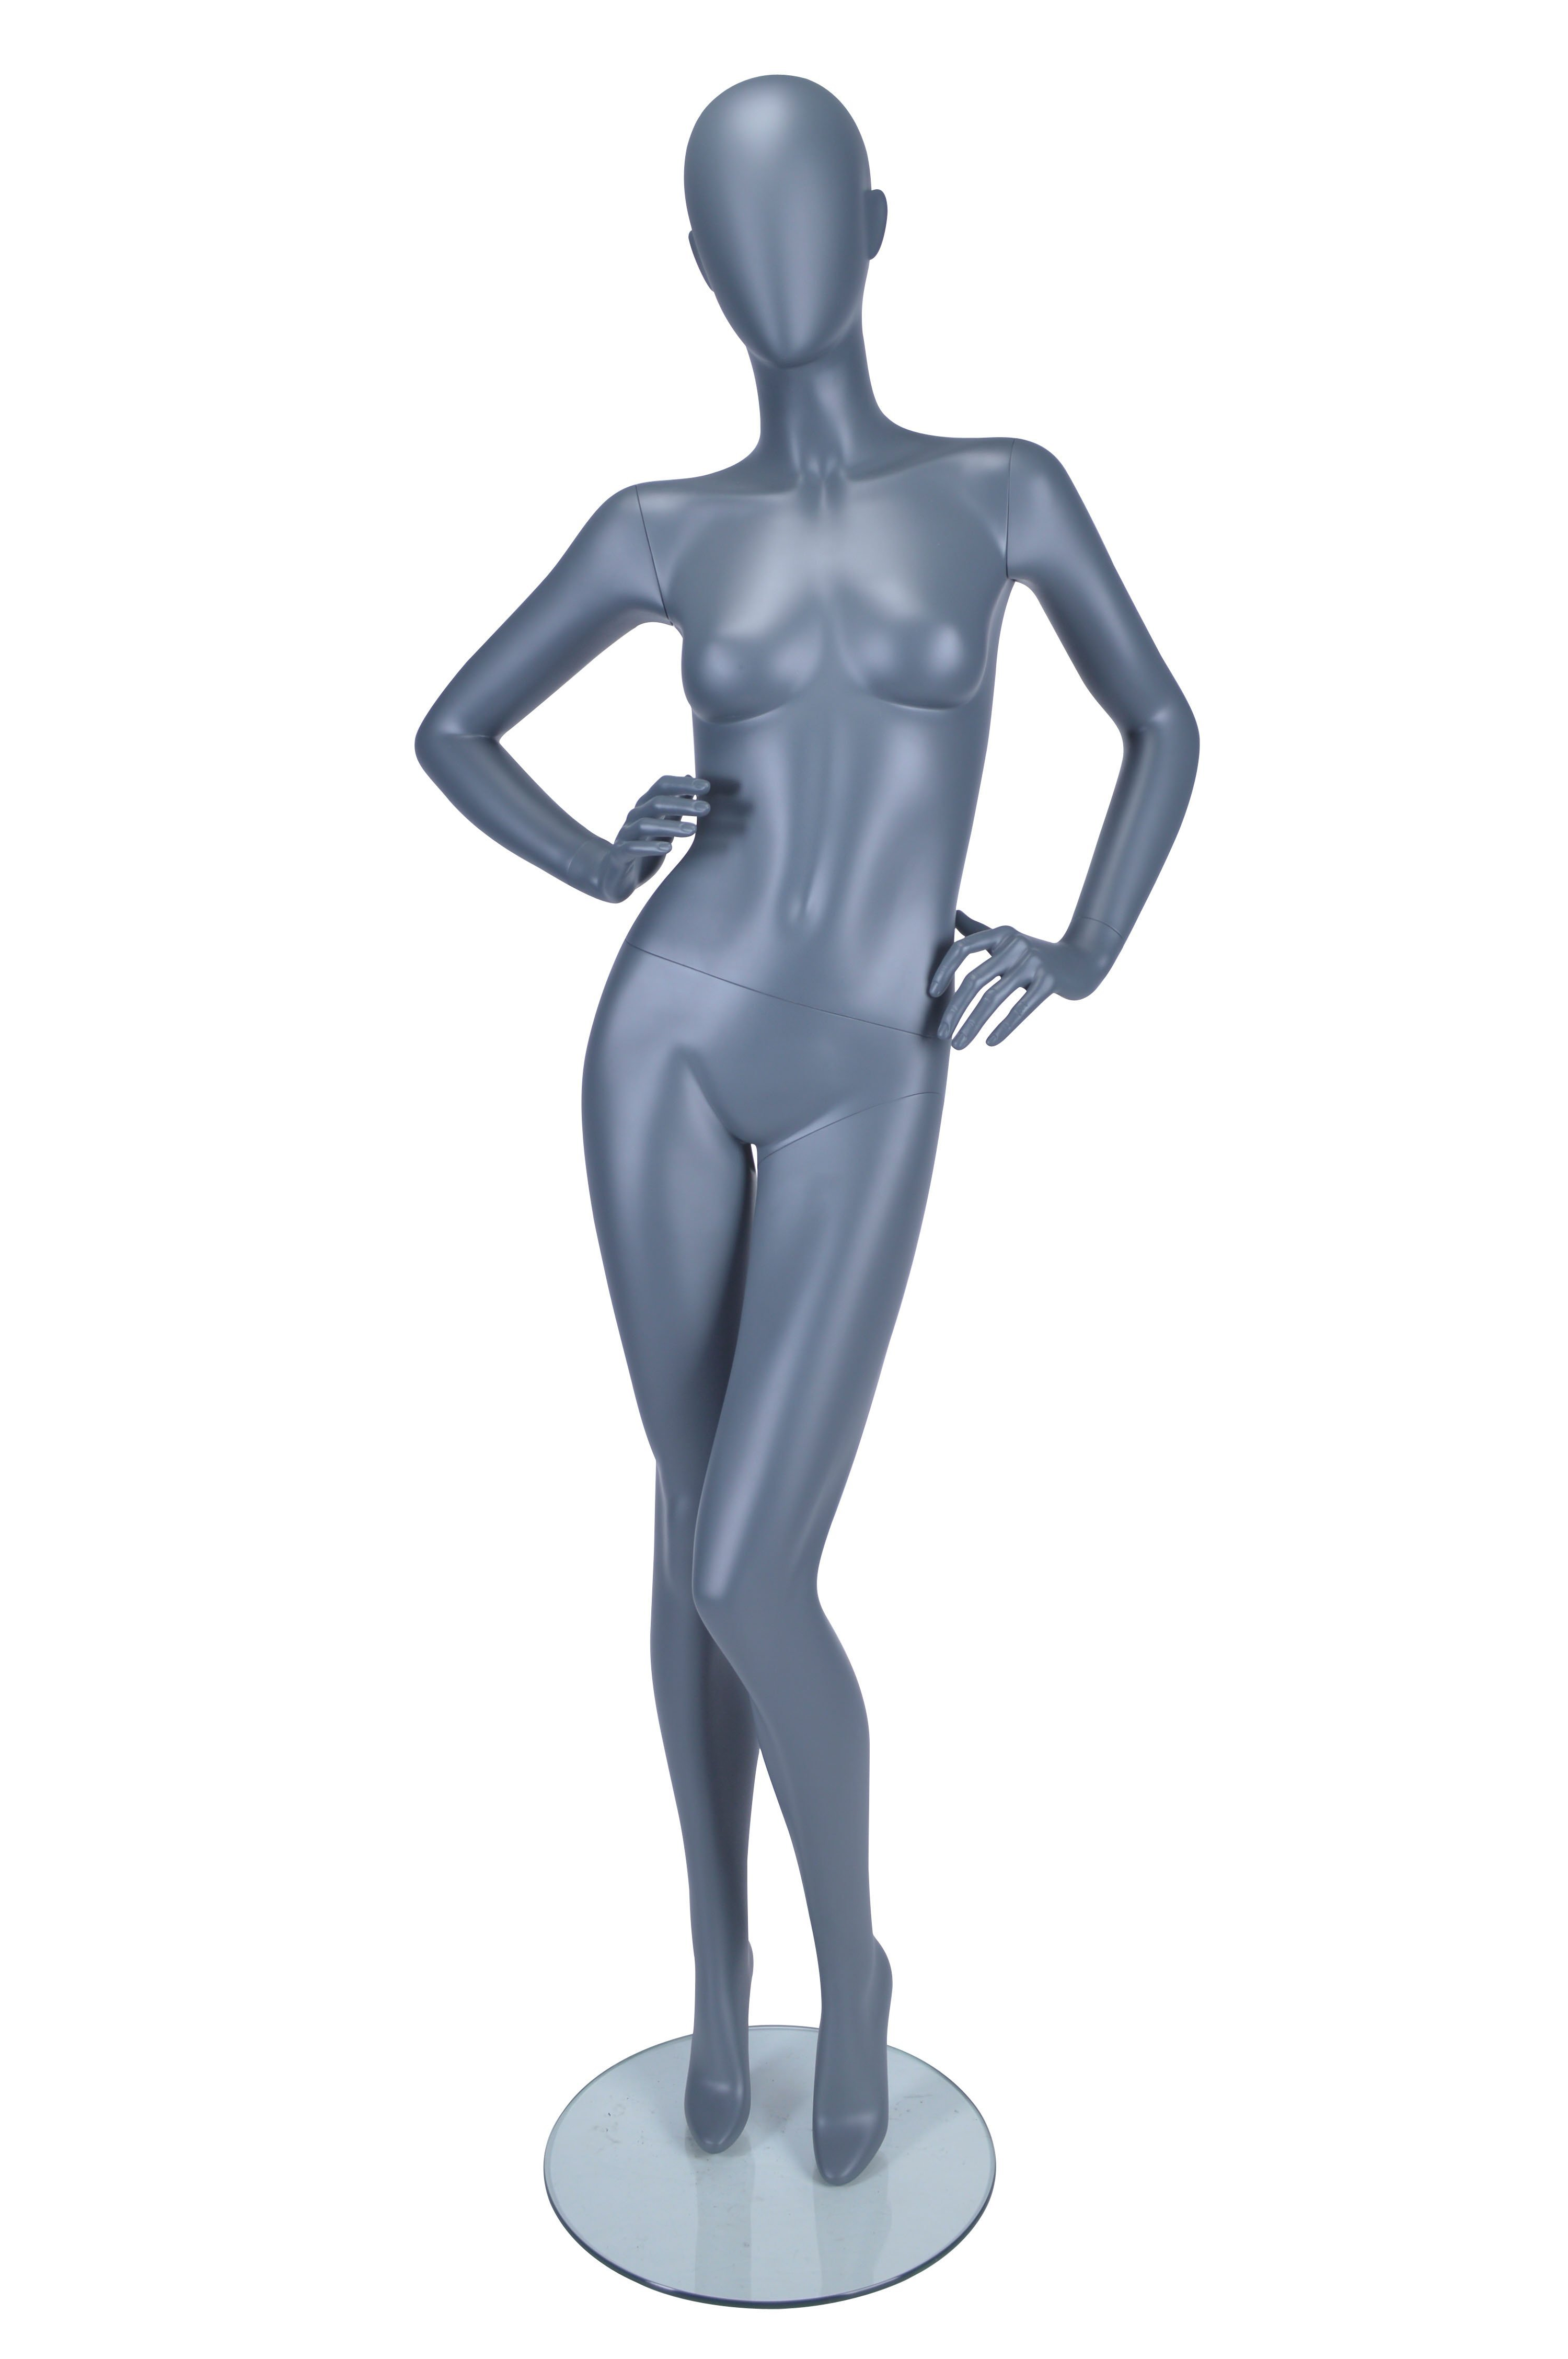 HB1002179 - Female Mannequin Slanted Pose, Hands on Hips - Matt Grey